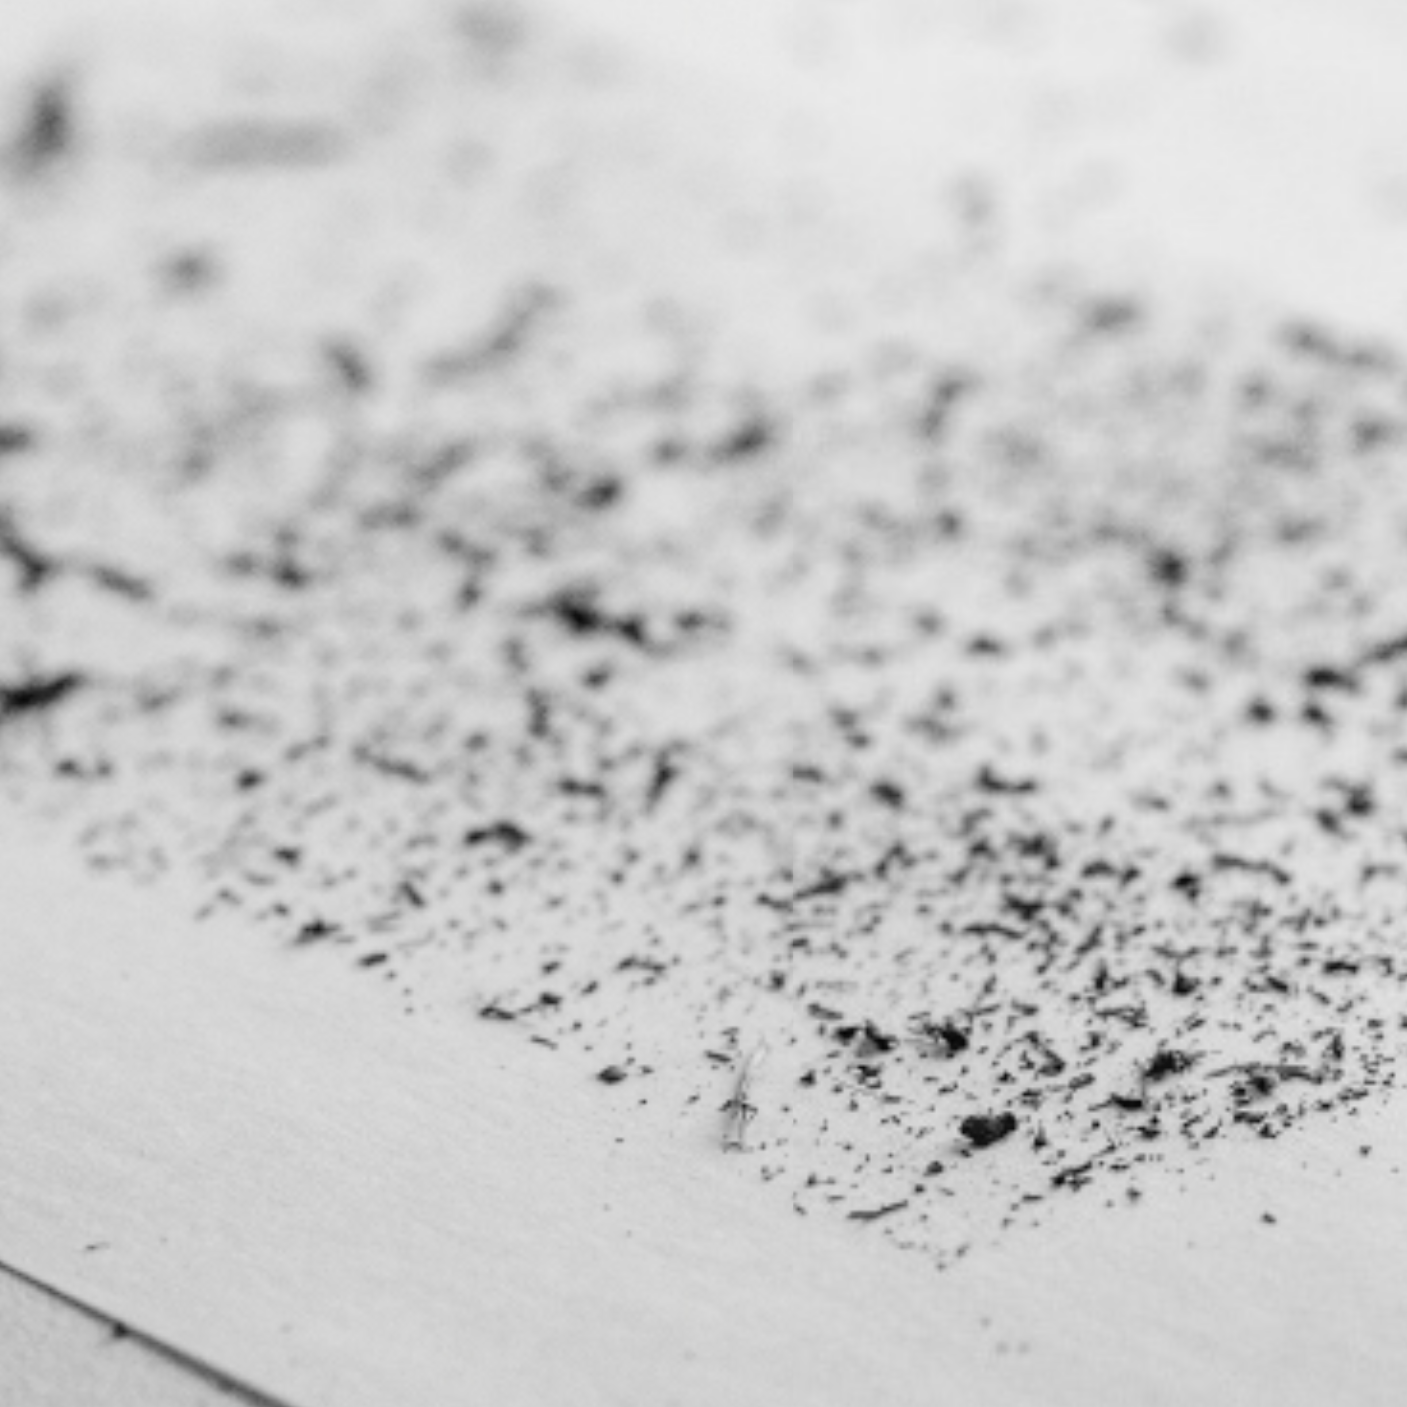 21. Photograph in a diagonal perspective of a piece of paper with charcoal dust. Low depth of field, front, lower half of page in focus back out of focus.